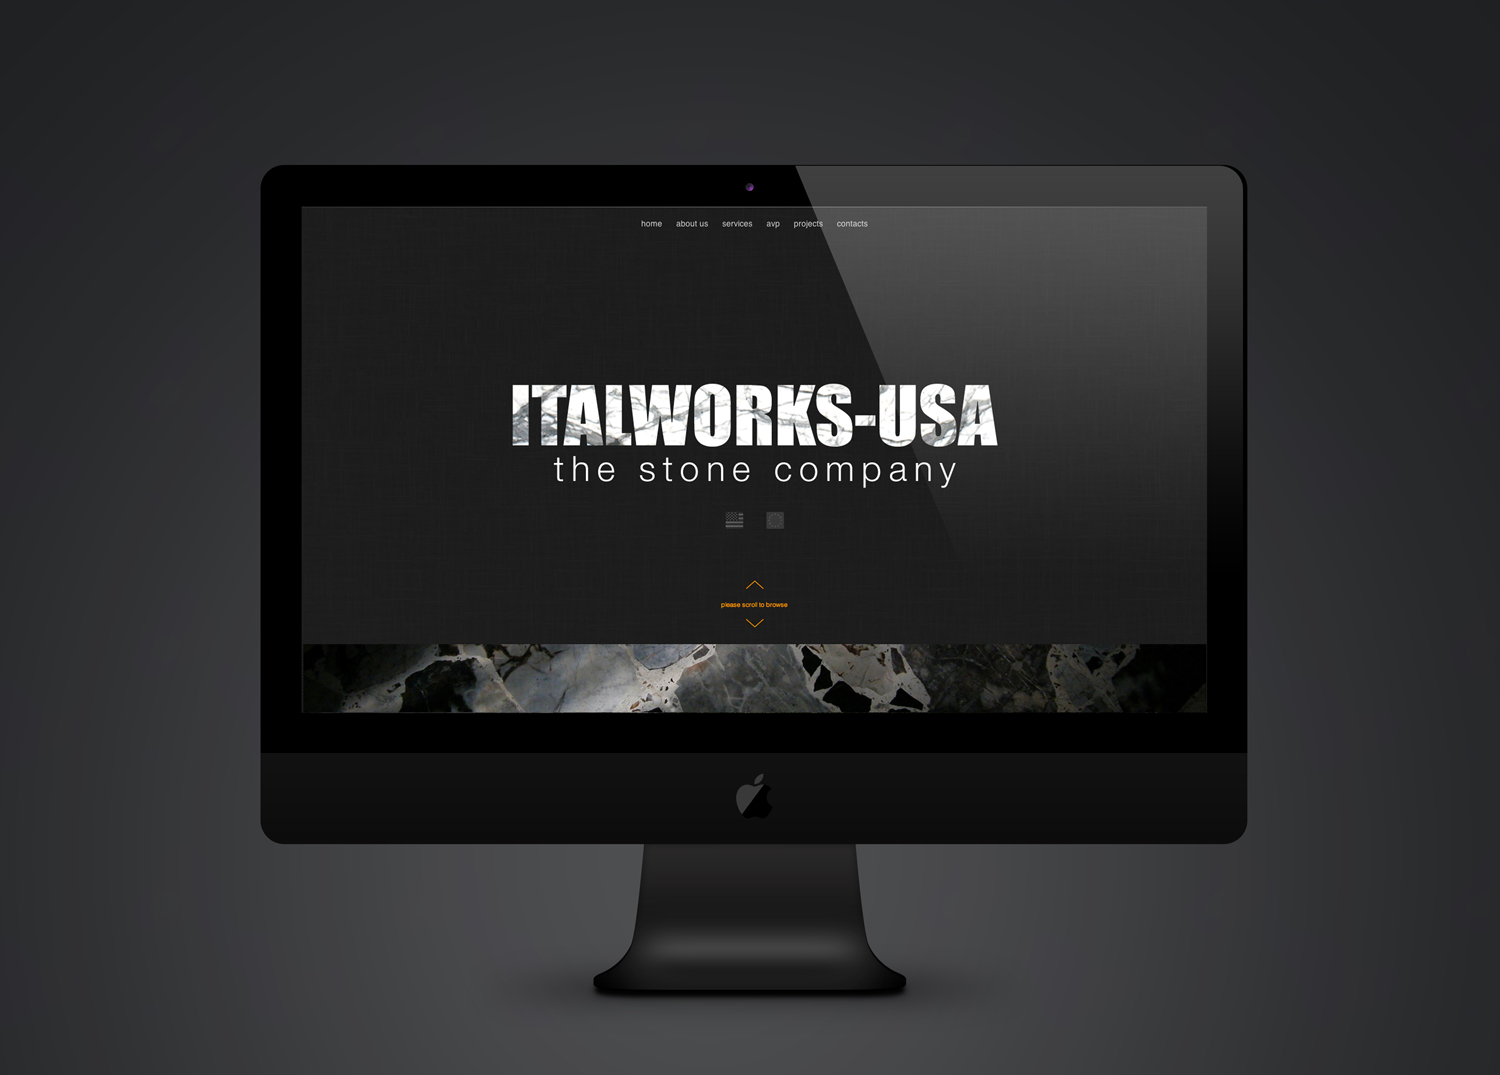 italworks usa